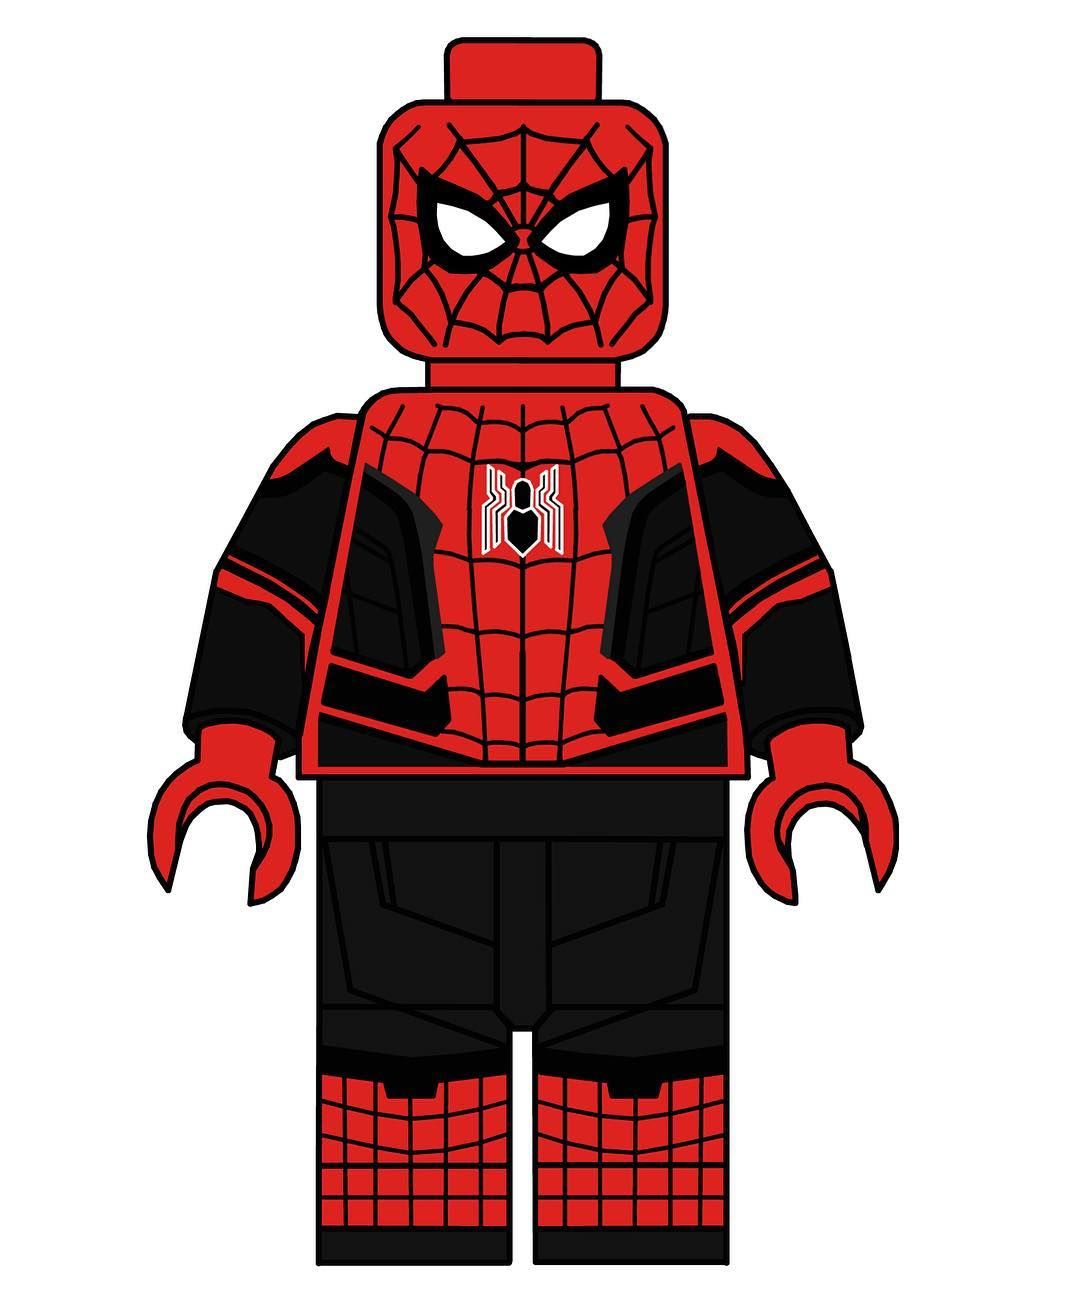 Spider Suit Man Home Far Lego Minifigurelego Custom From K1TJFlc